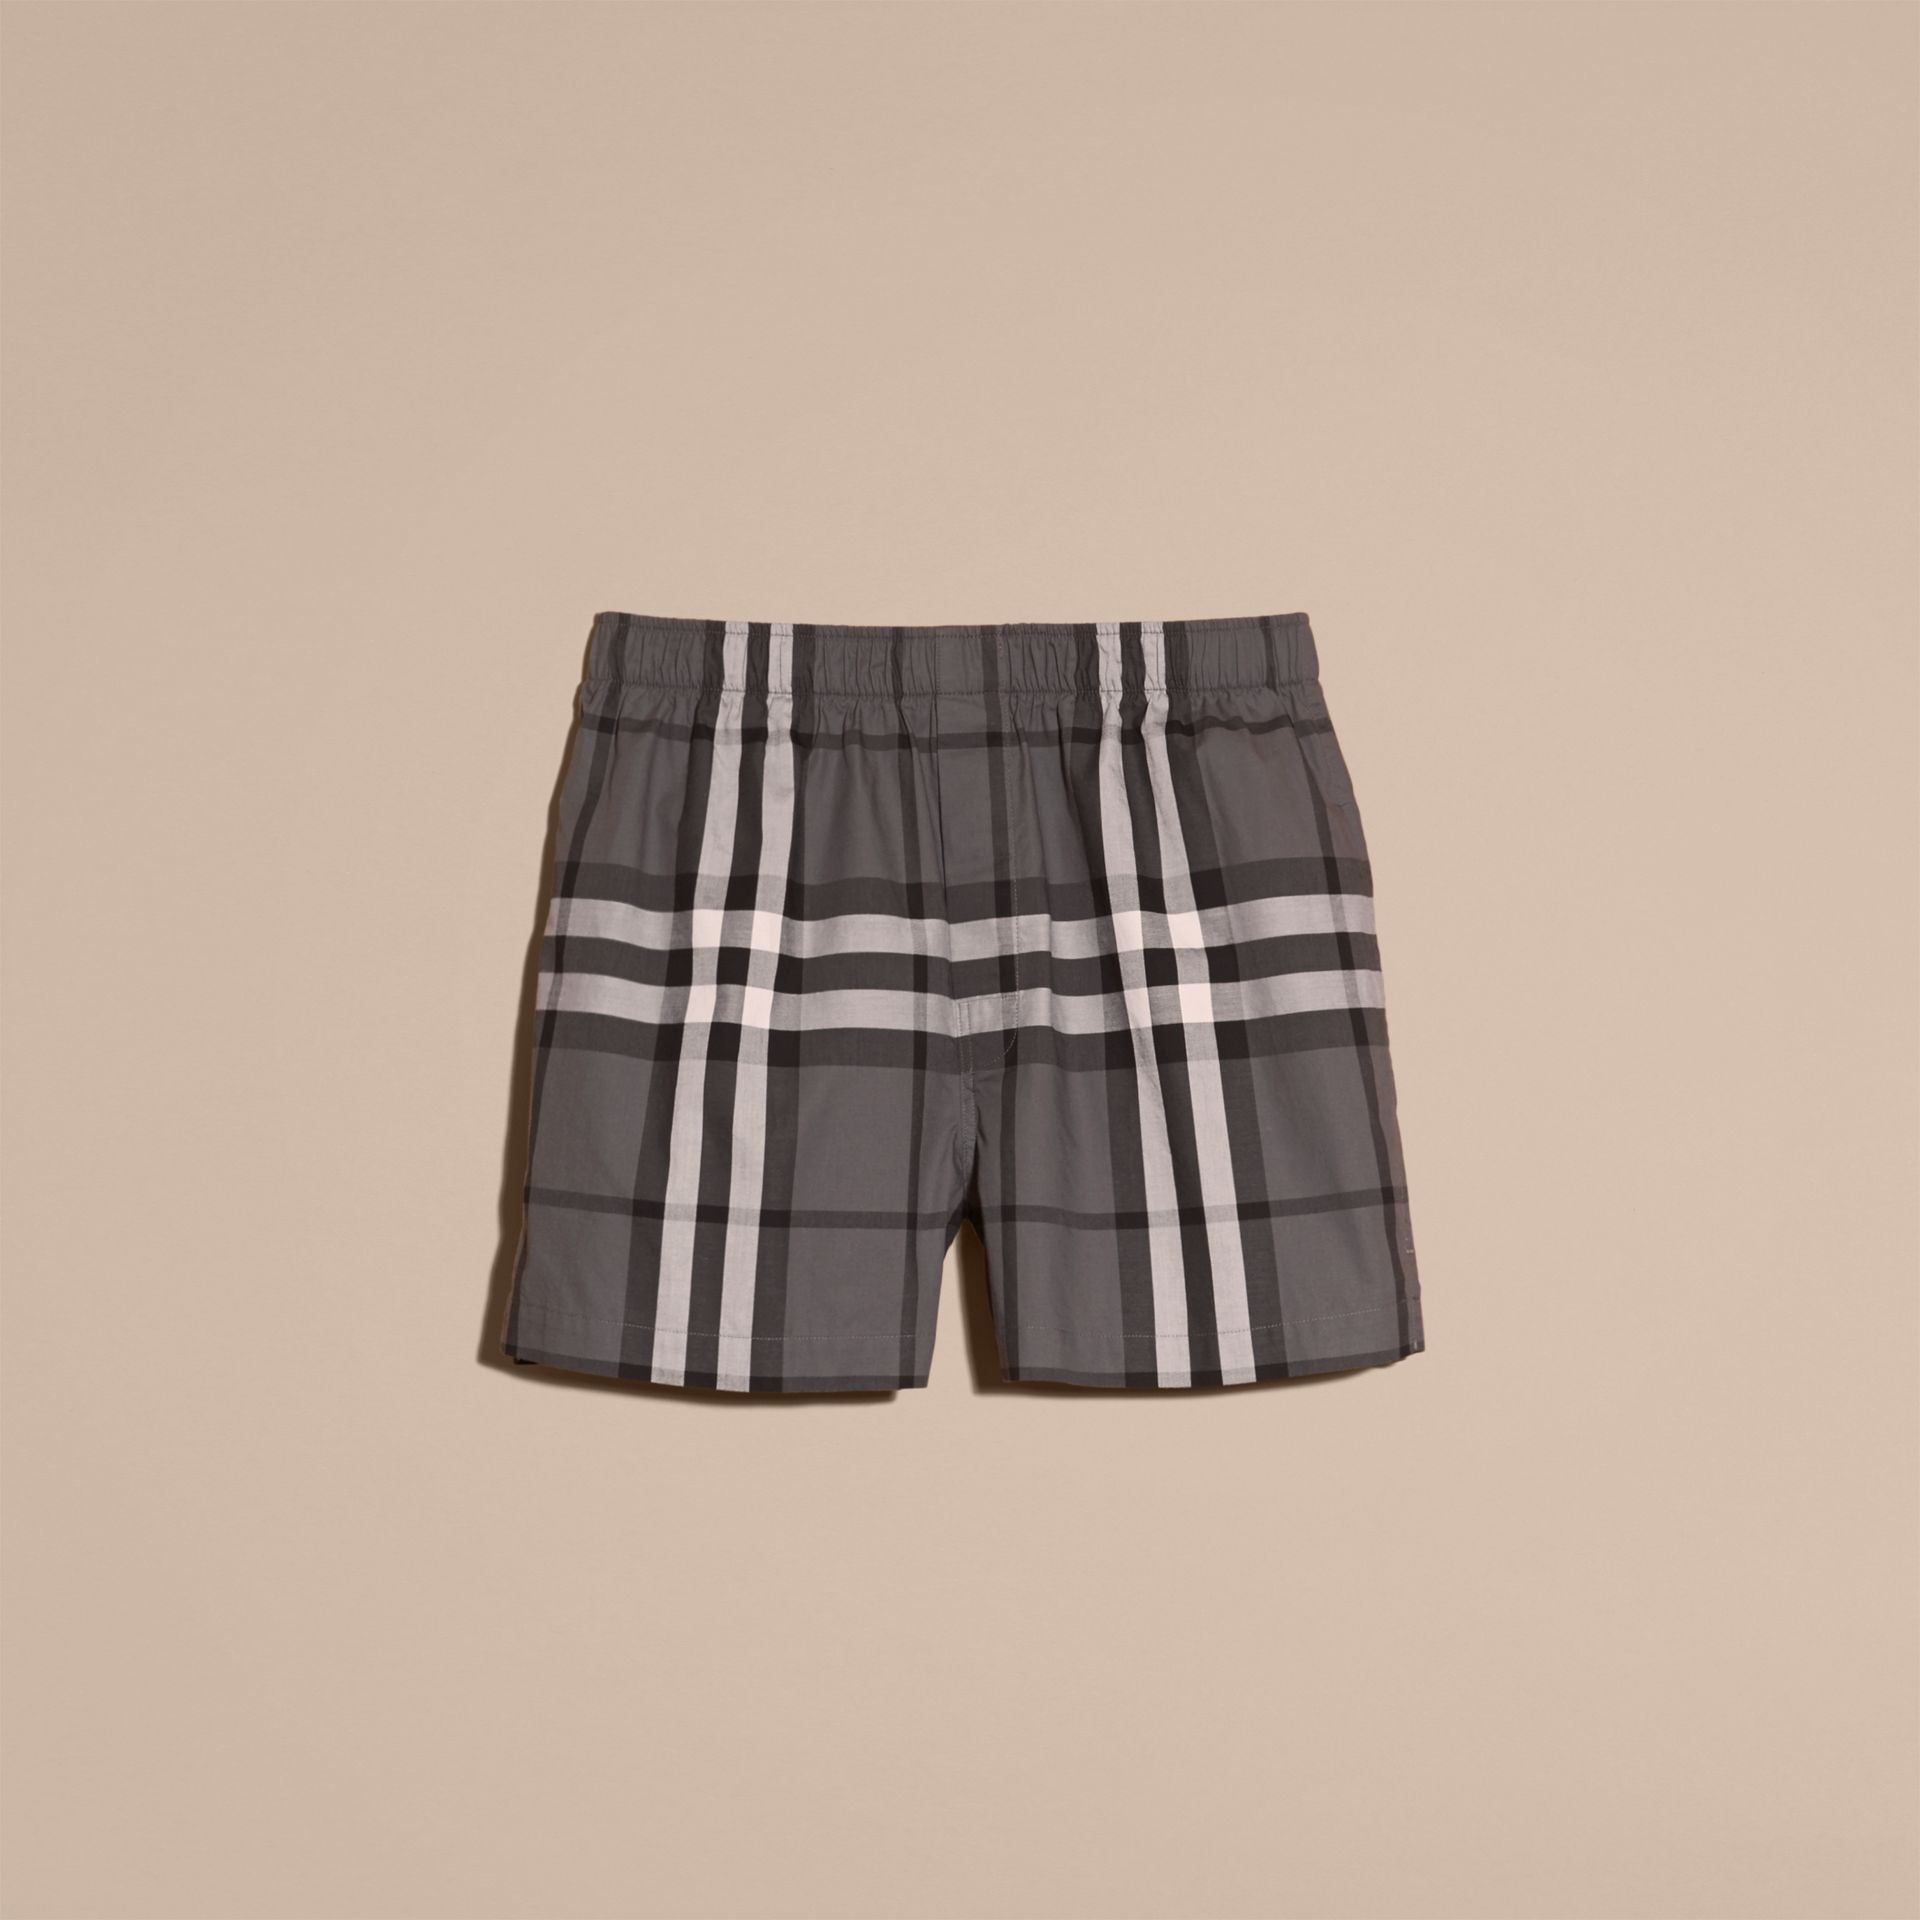 Check Twill Cotton Boxer Shorts in Charcoal - Men | Burberry - gallery image 4